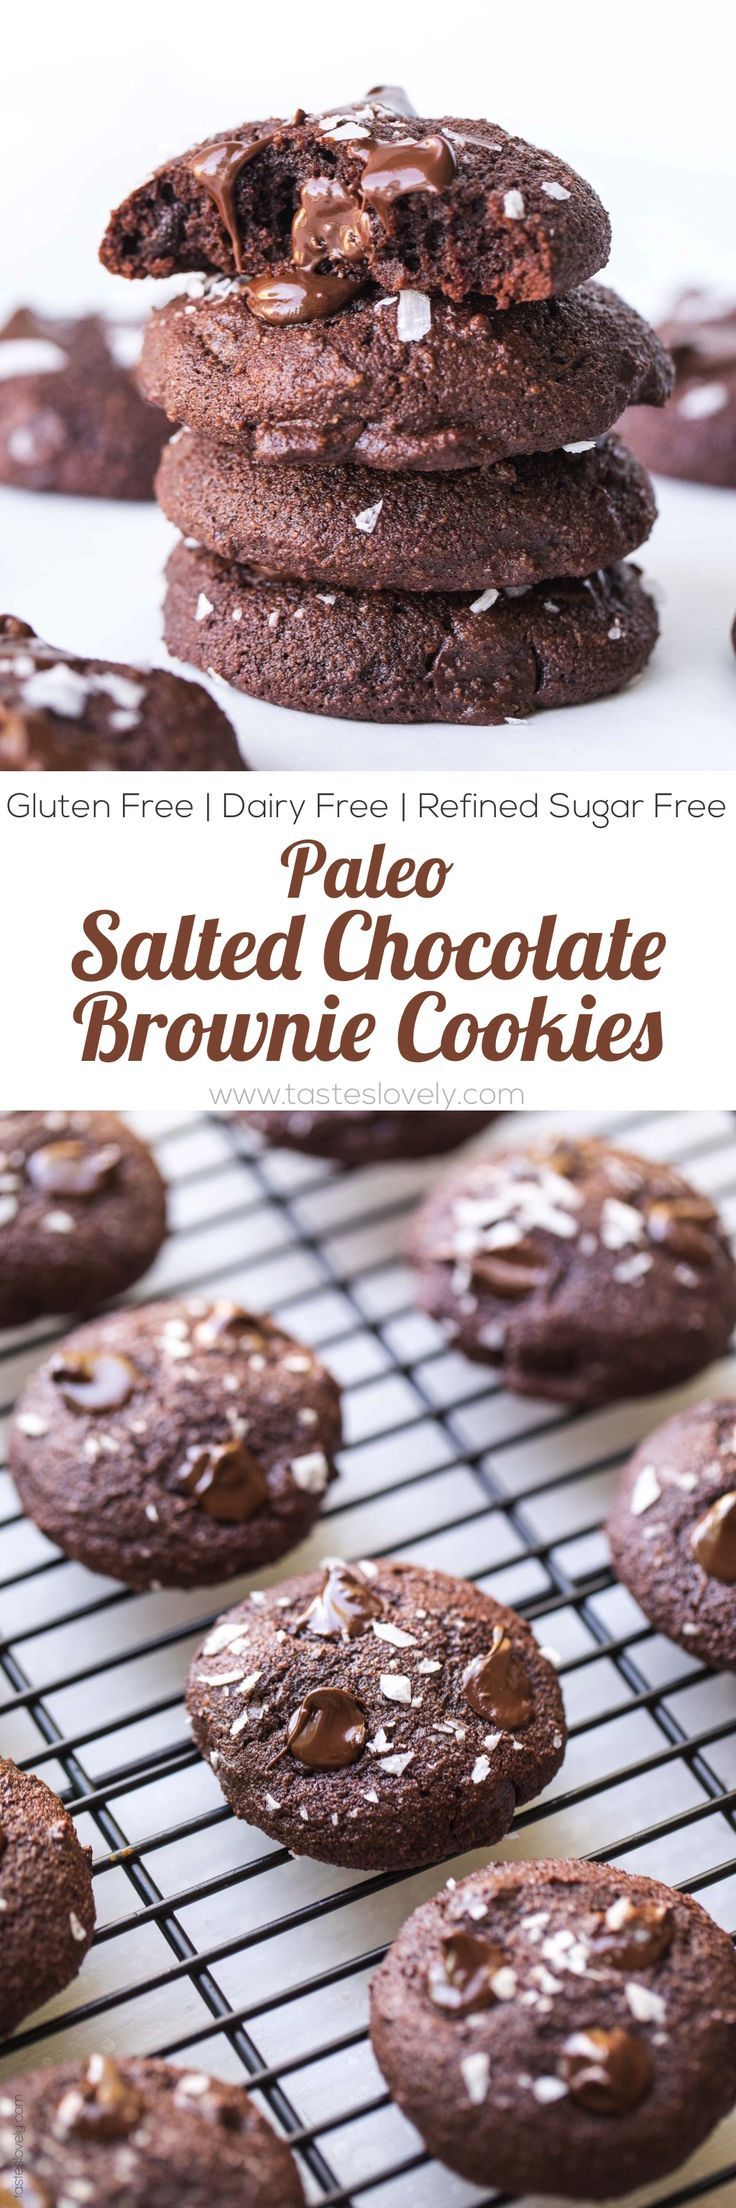 Paleo Salted Chocolate Brownie Cookies   Made with almond flour and sweetened with coconut sugar! Try these gluten free, dairy free, clean eating, DELICIOUS treats today! #TastesLovely #paleocookies #paleobaking #saltedchocolate #paleodesserts #glutenfreedesserts #glutenfreecookies